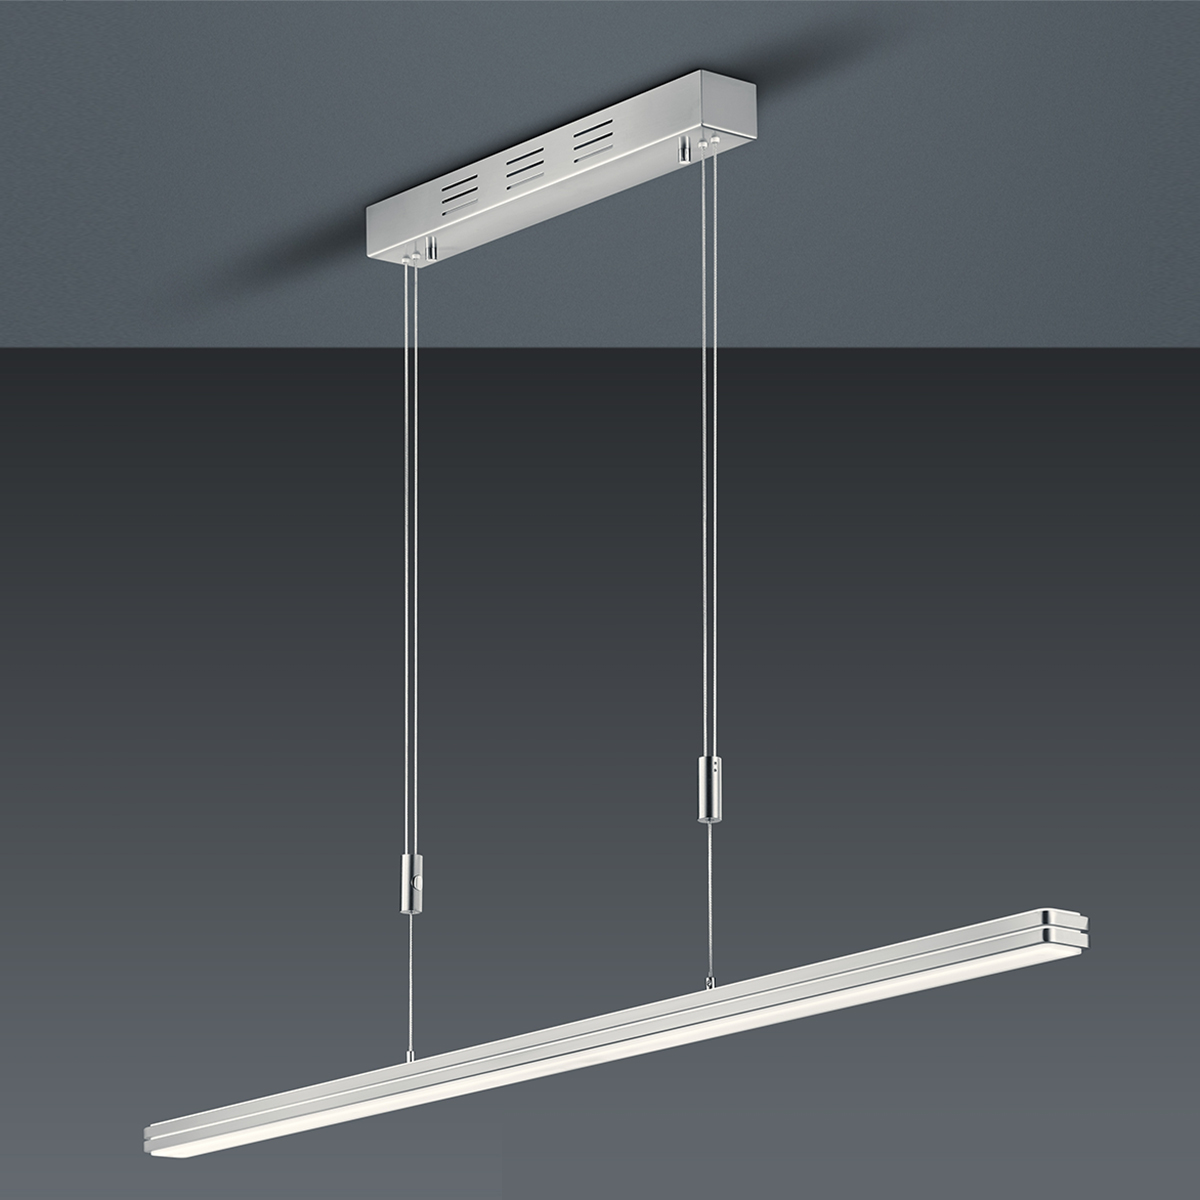 Bankamp Gem LED Pendelleuchte 2140/1-92